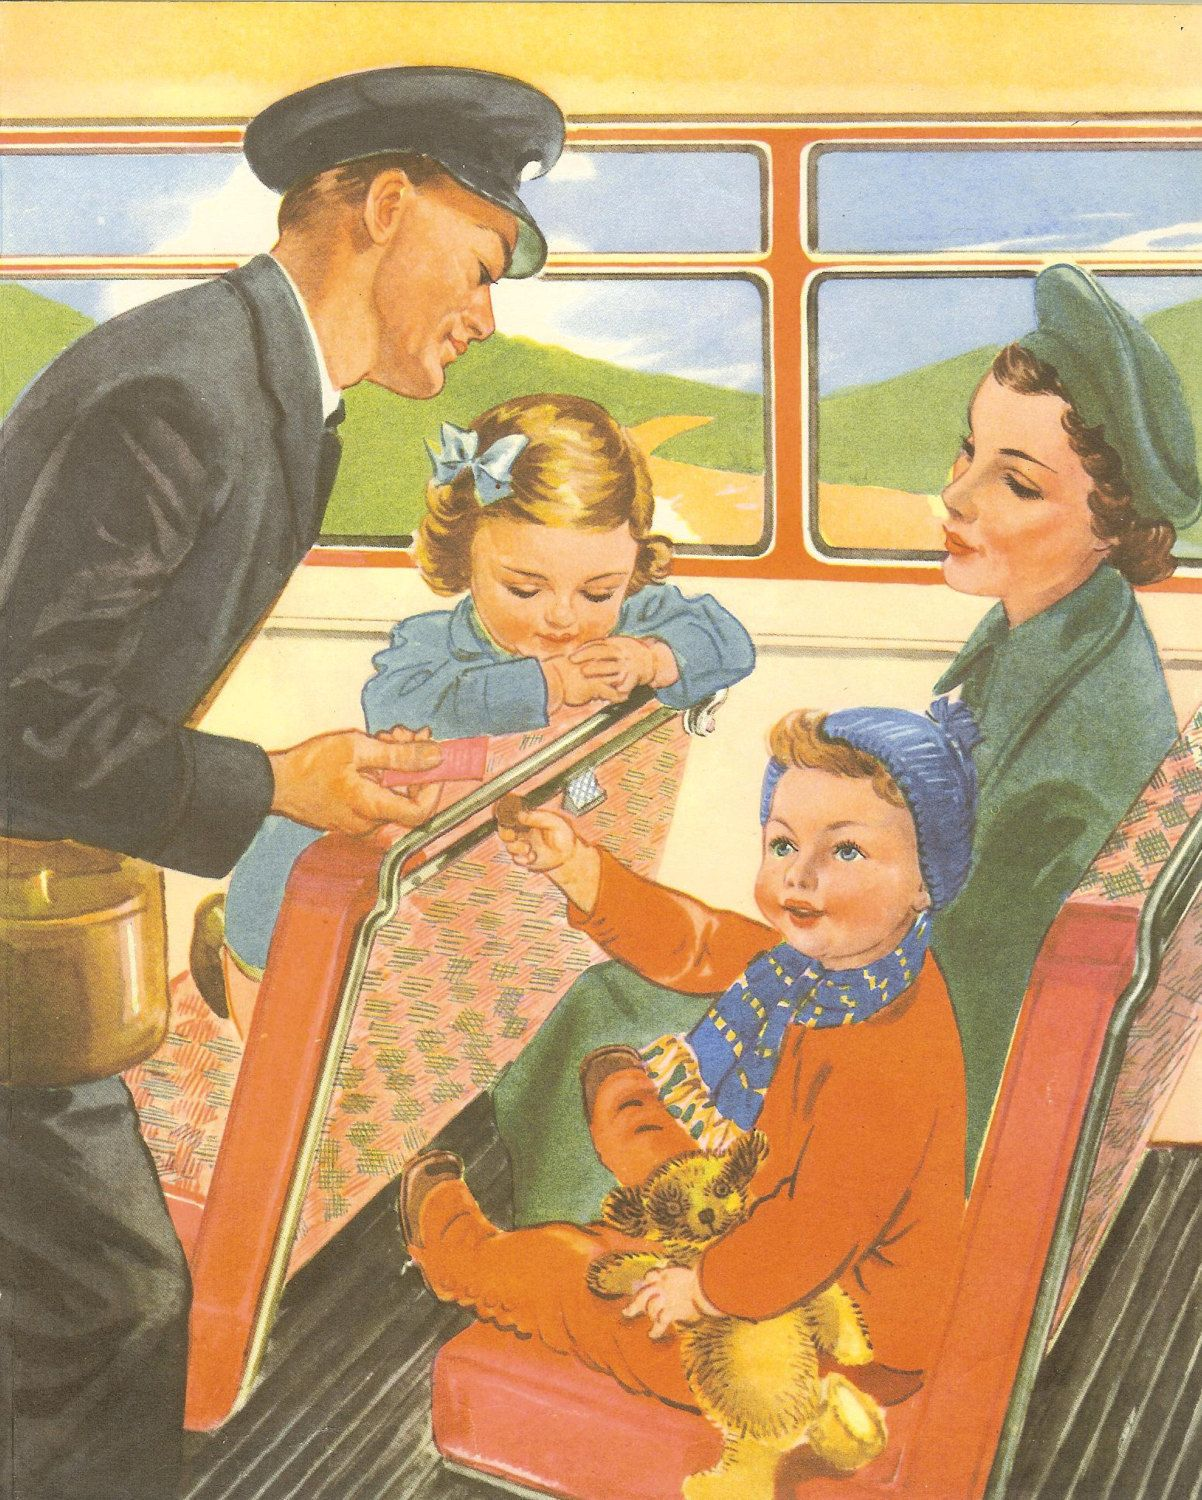 Vintage 1950s Childrens Print - Toddler Paying Bus Conductor For ...